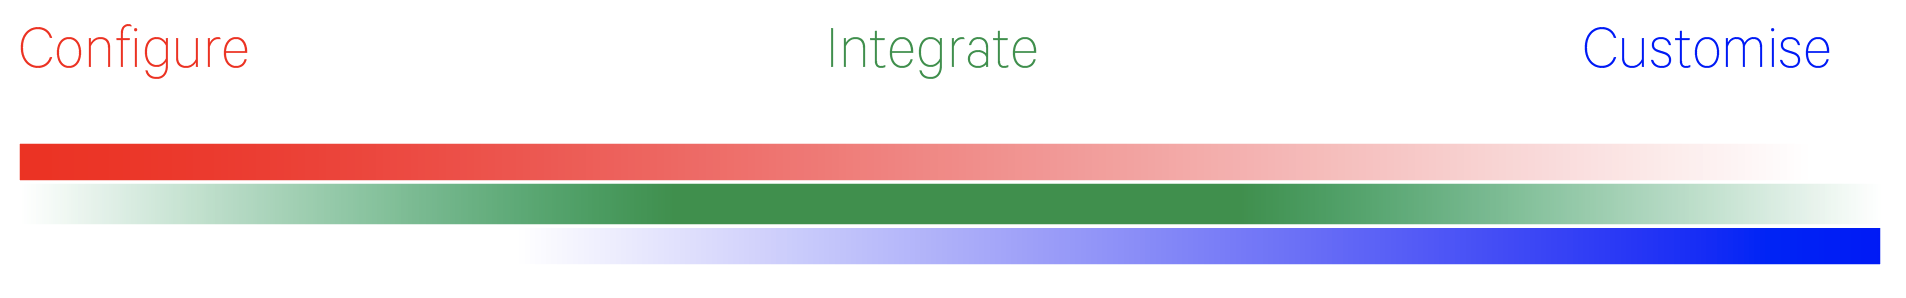 Configure, Integrate, Customise CRM